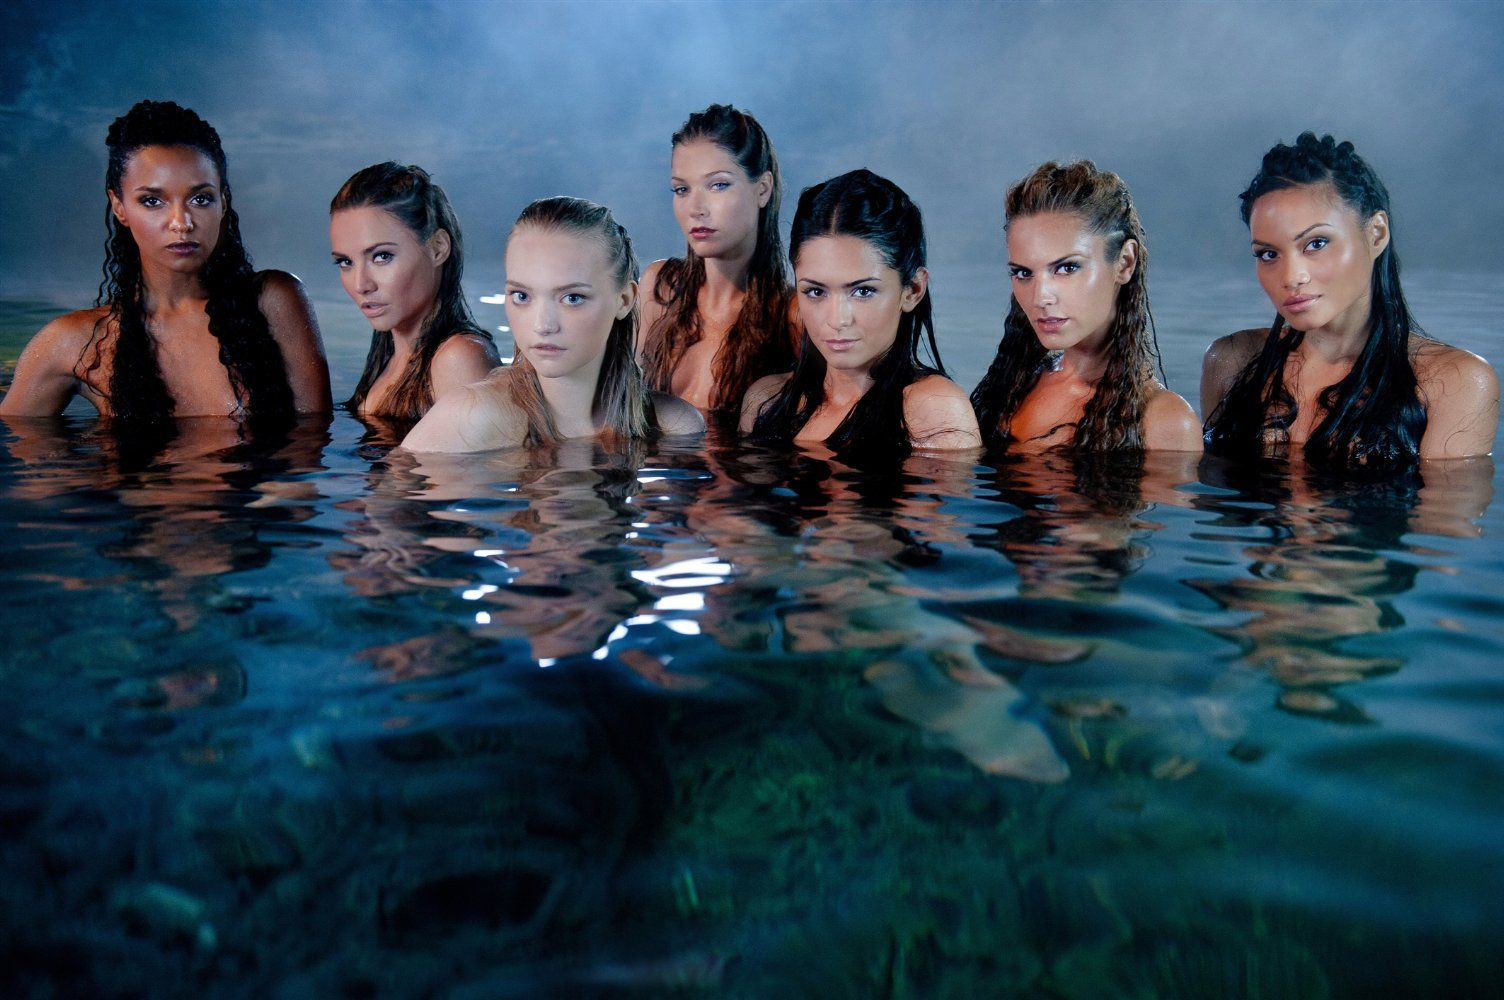 An assortment of mermaids from Pirates of the Caribbean: On Stranger Tides (2011)